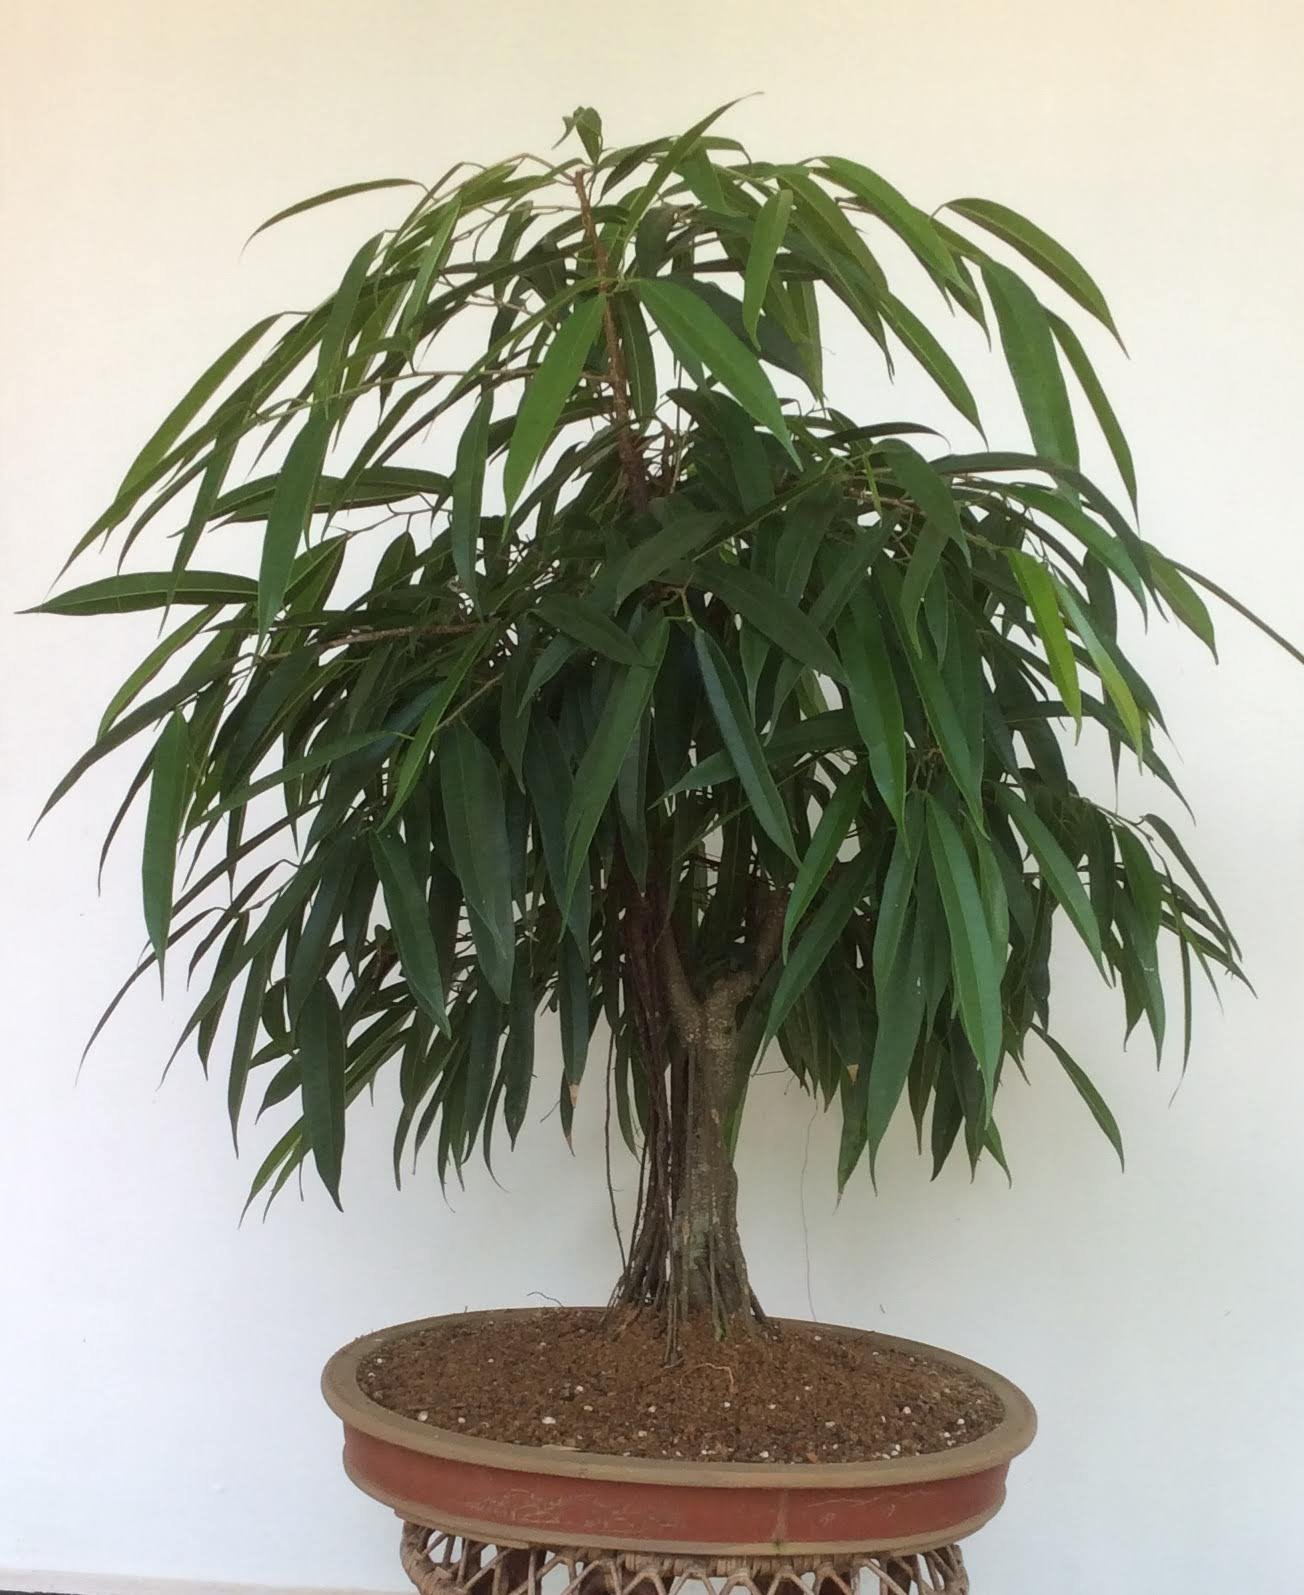 Ficus alii is a beautiful and ideal tropical bonsai plant.